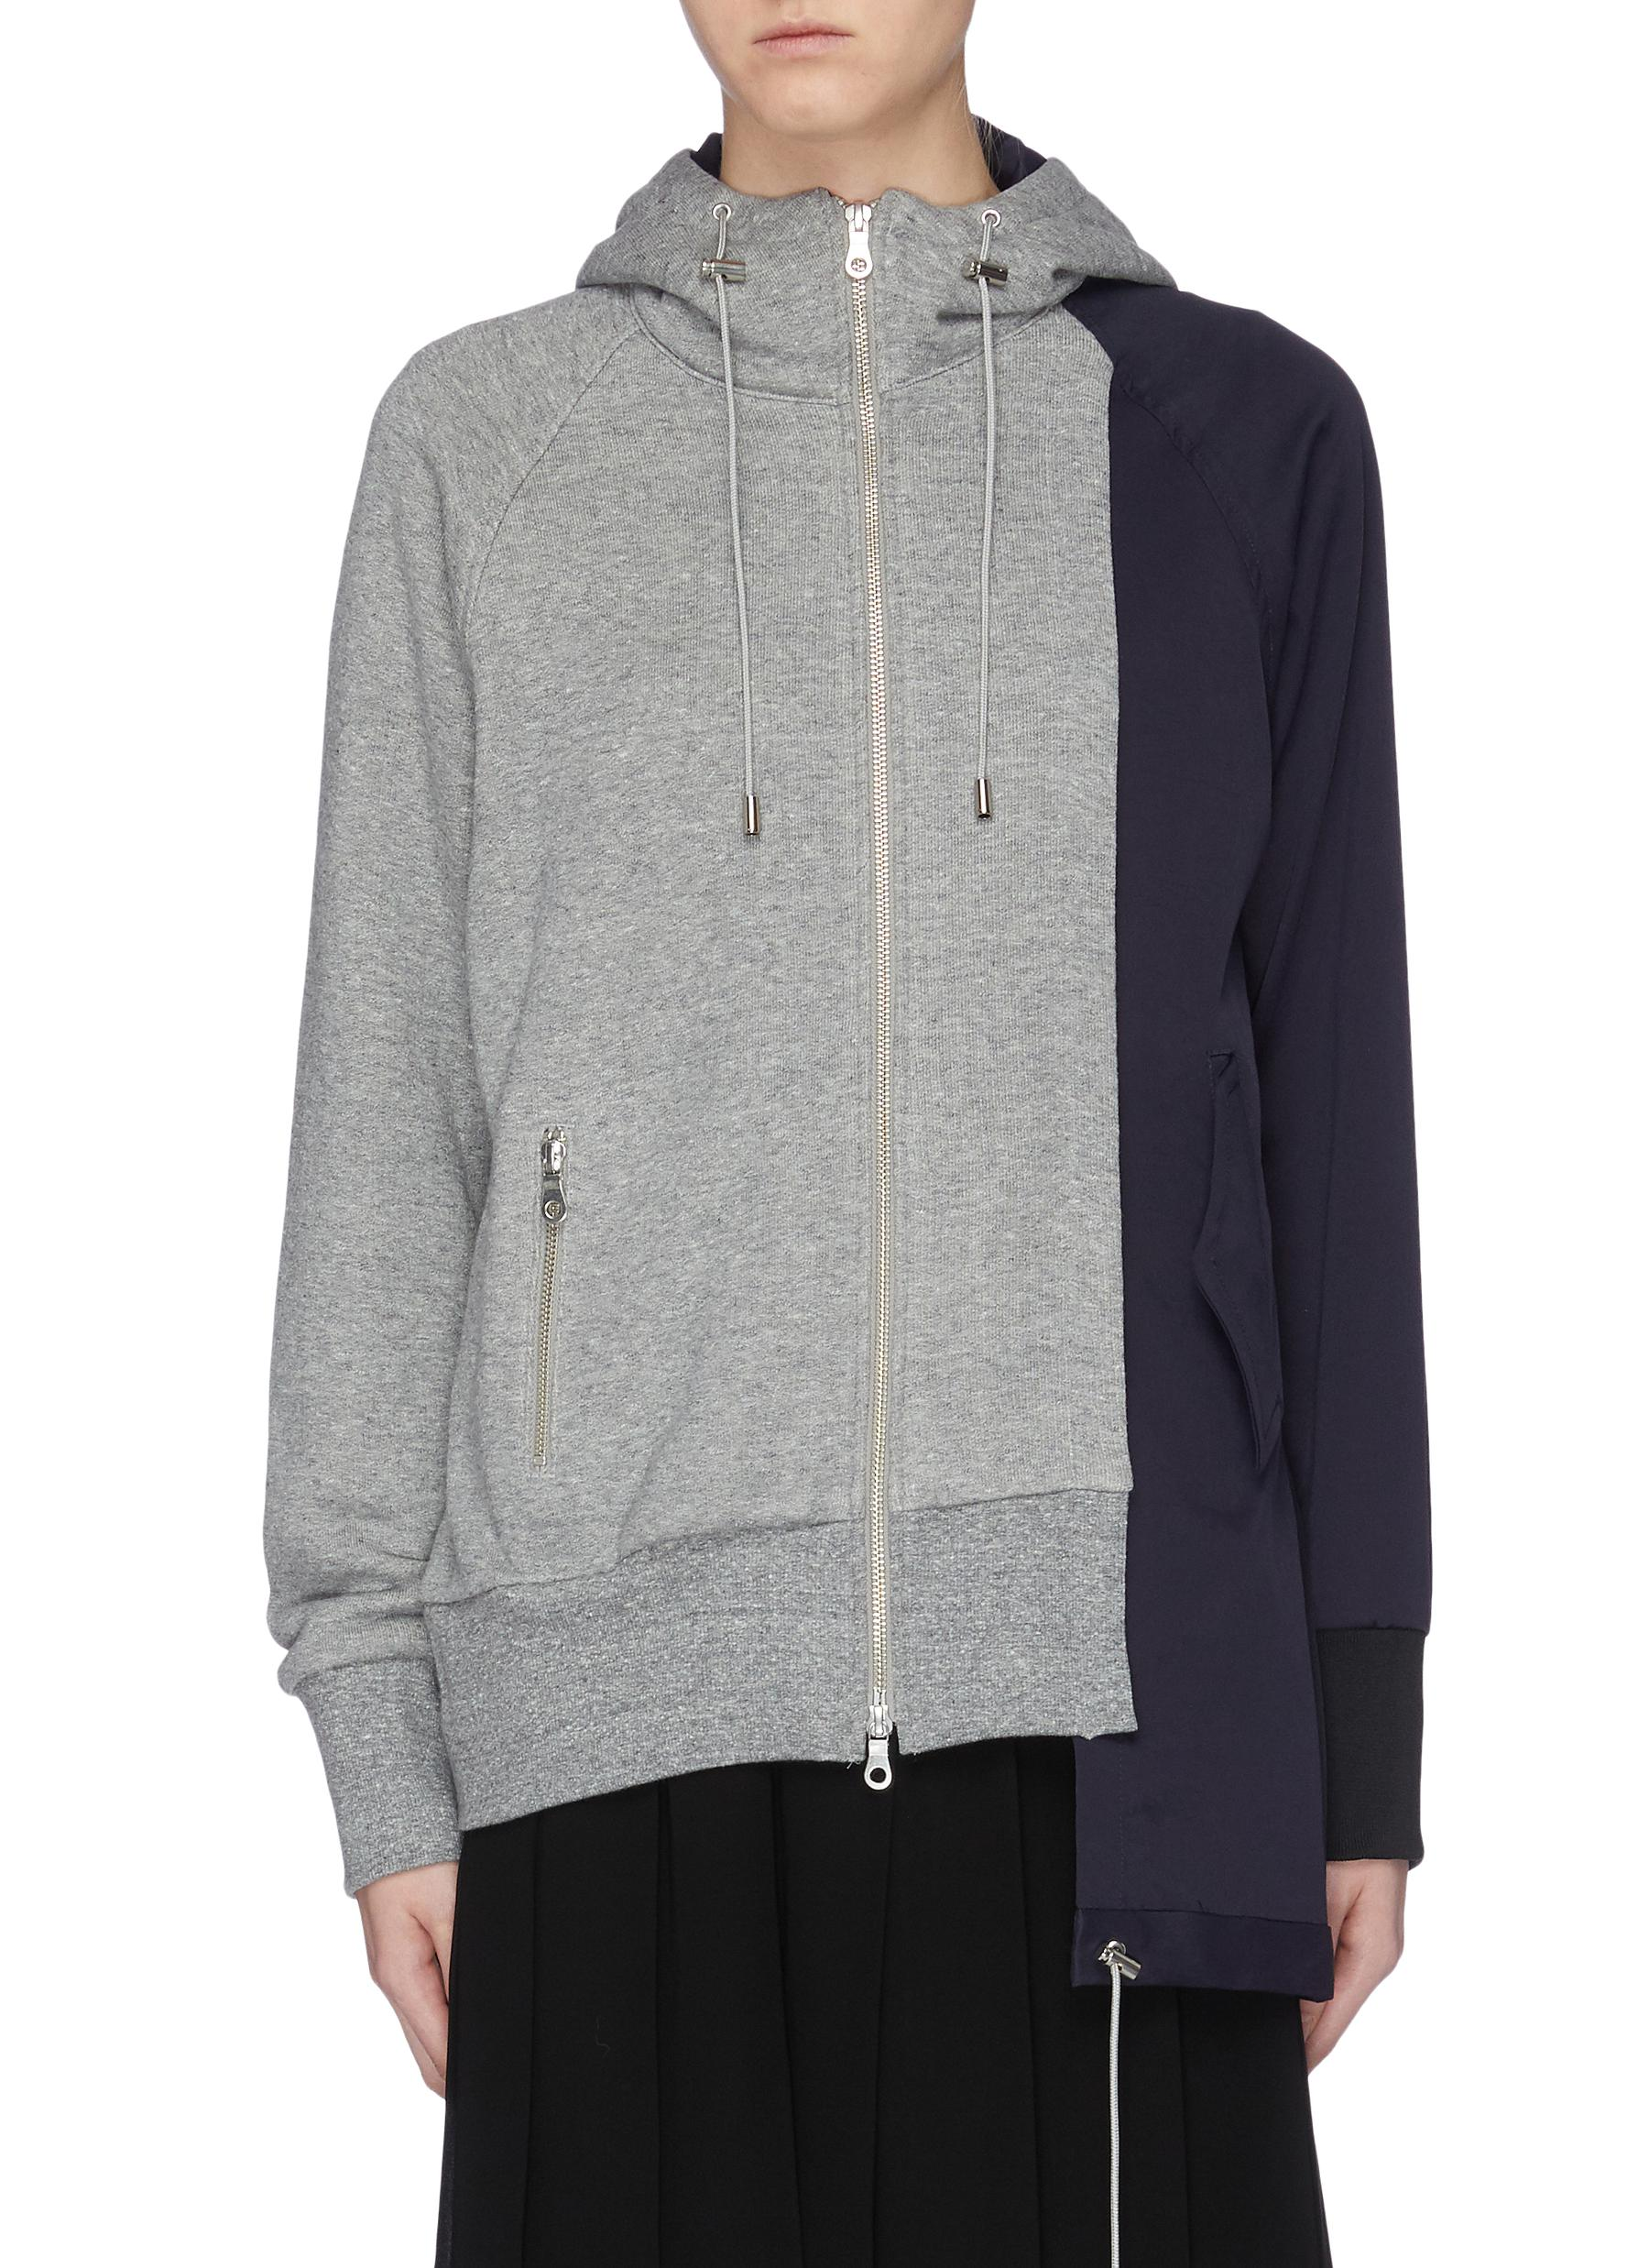 Colourblock staggered sleeve zip hoodie by The Keiji